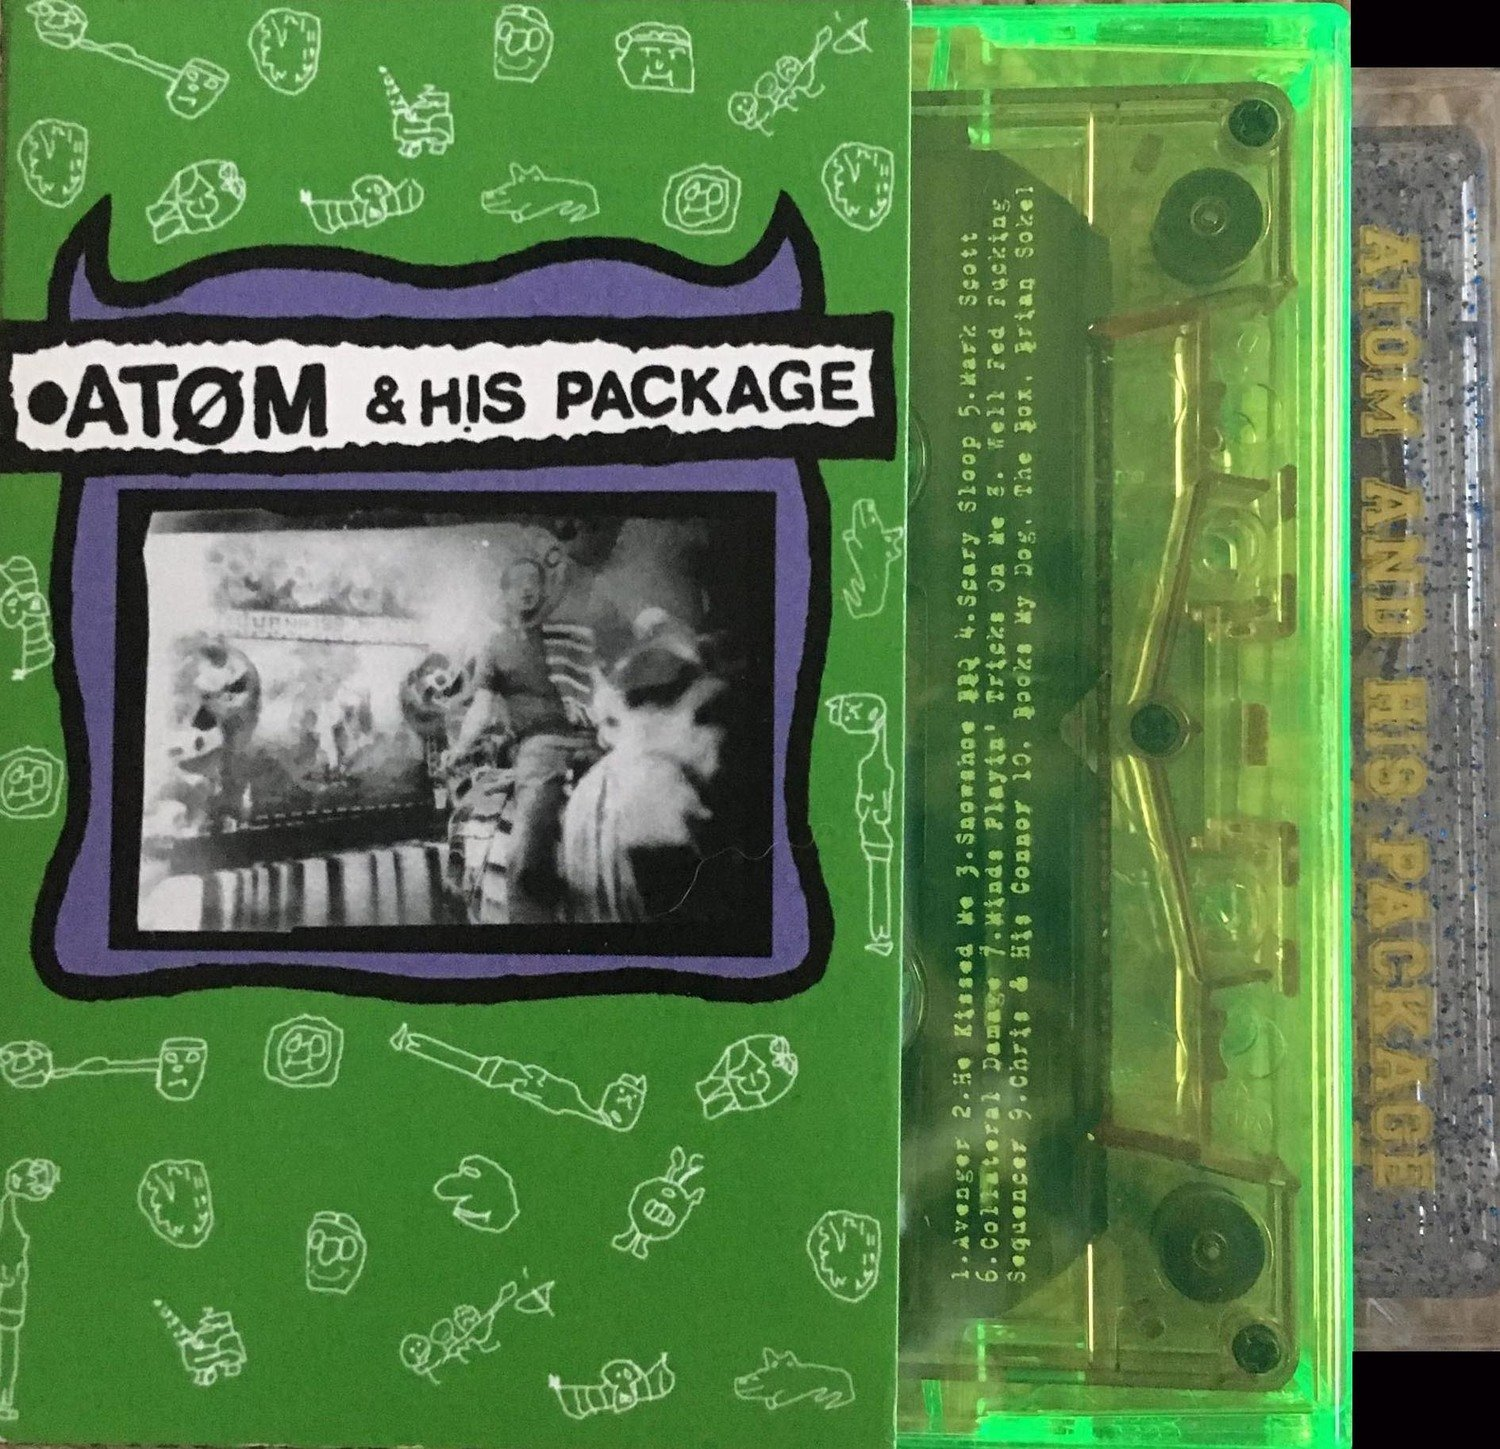 Atom And His Package - Cassette Box Set